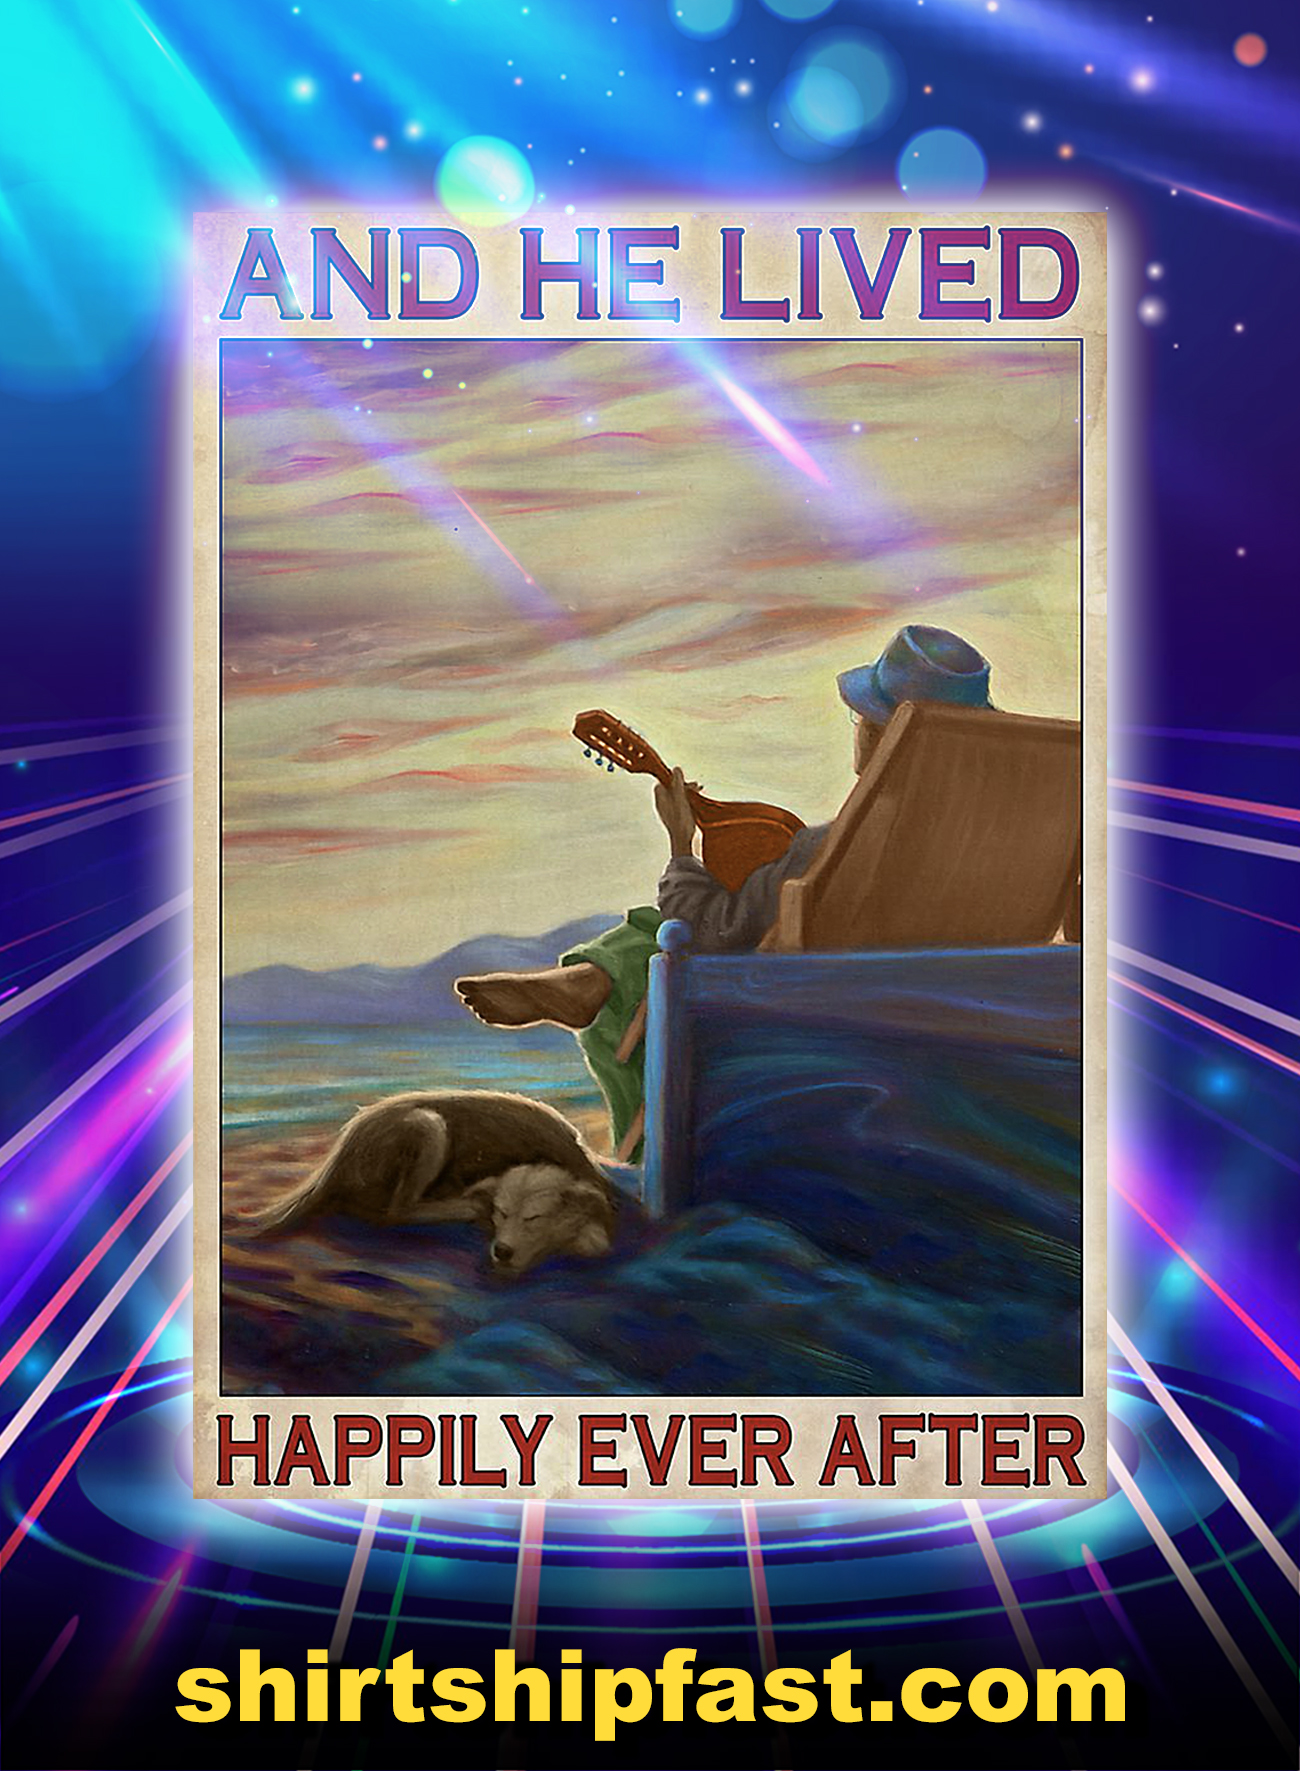 Man guitar dog and he lived happily ever after poster - A4